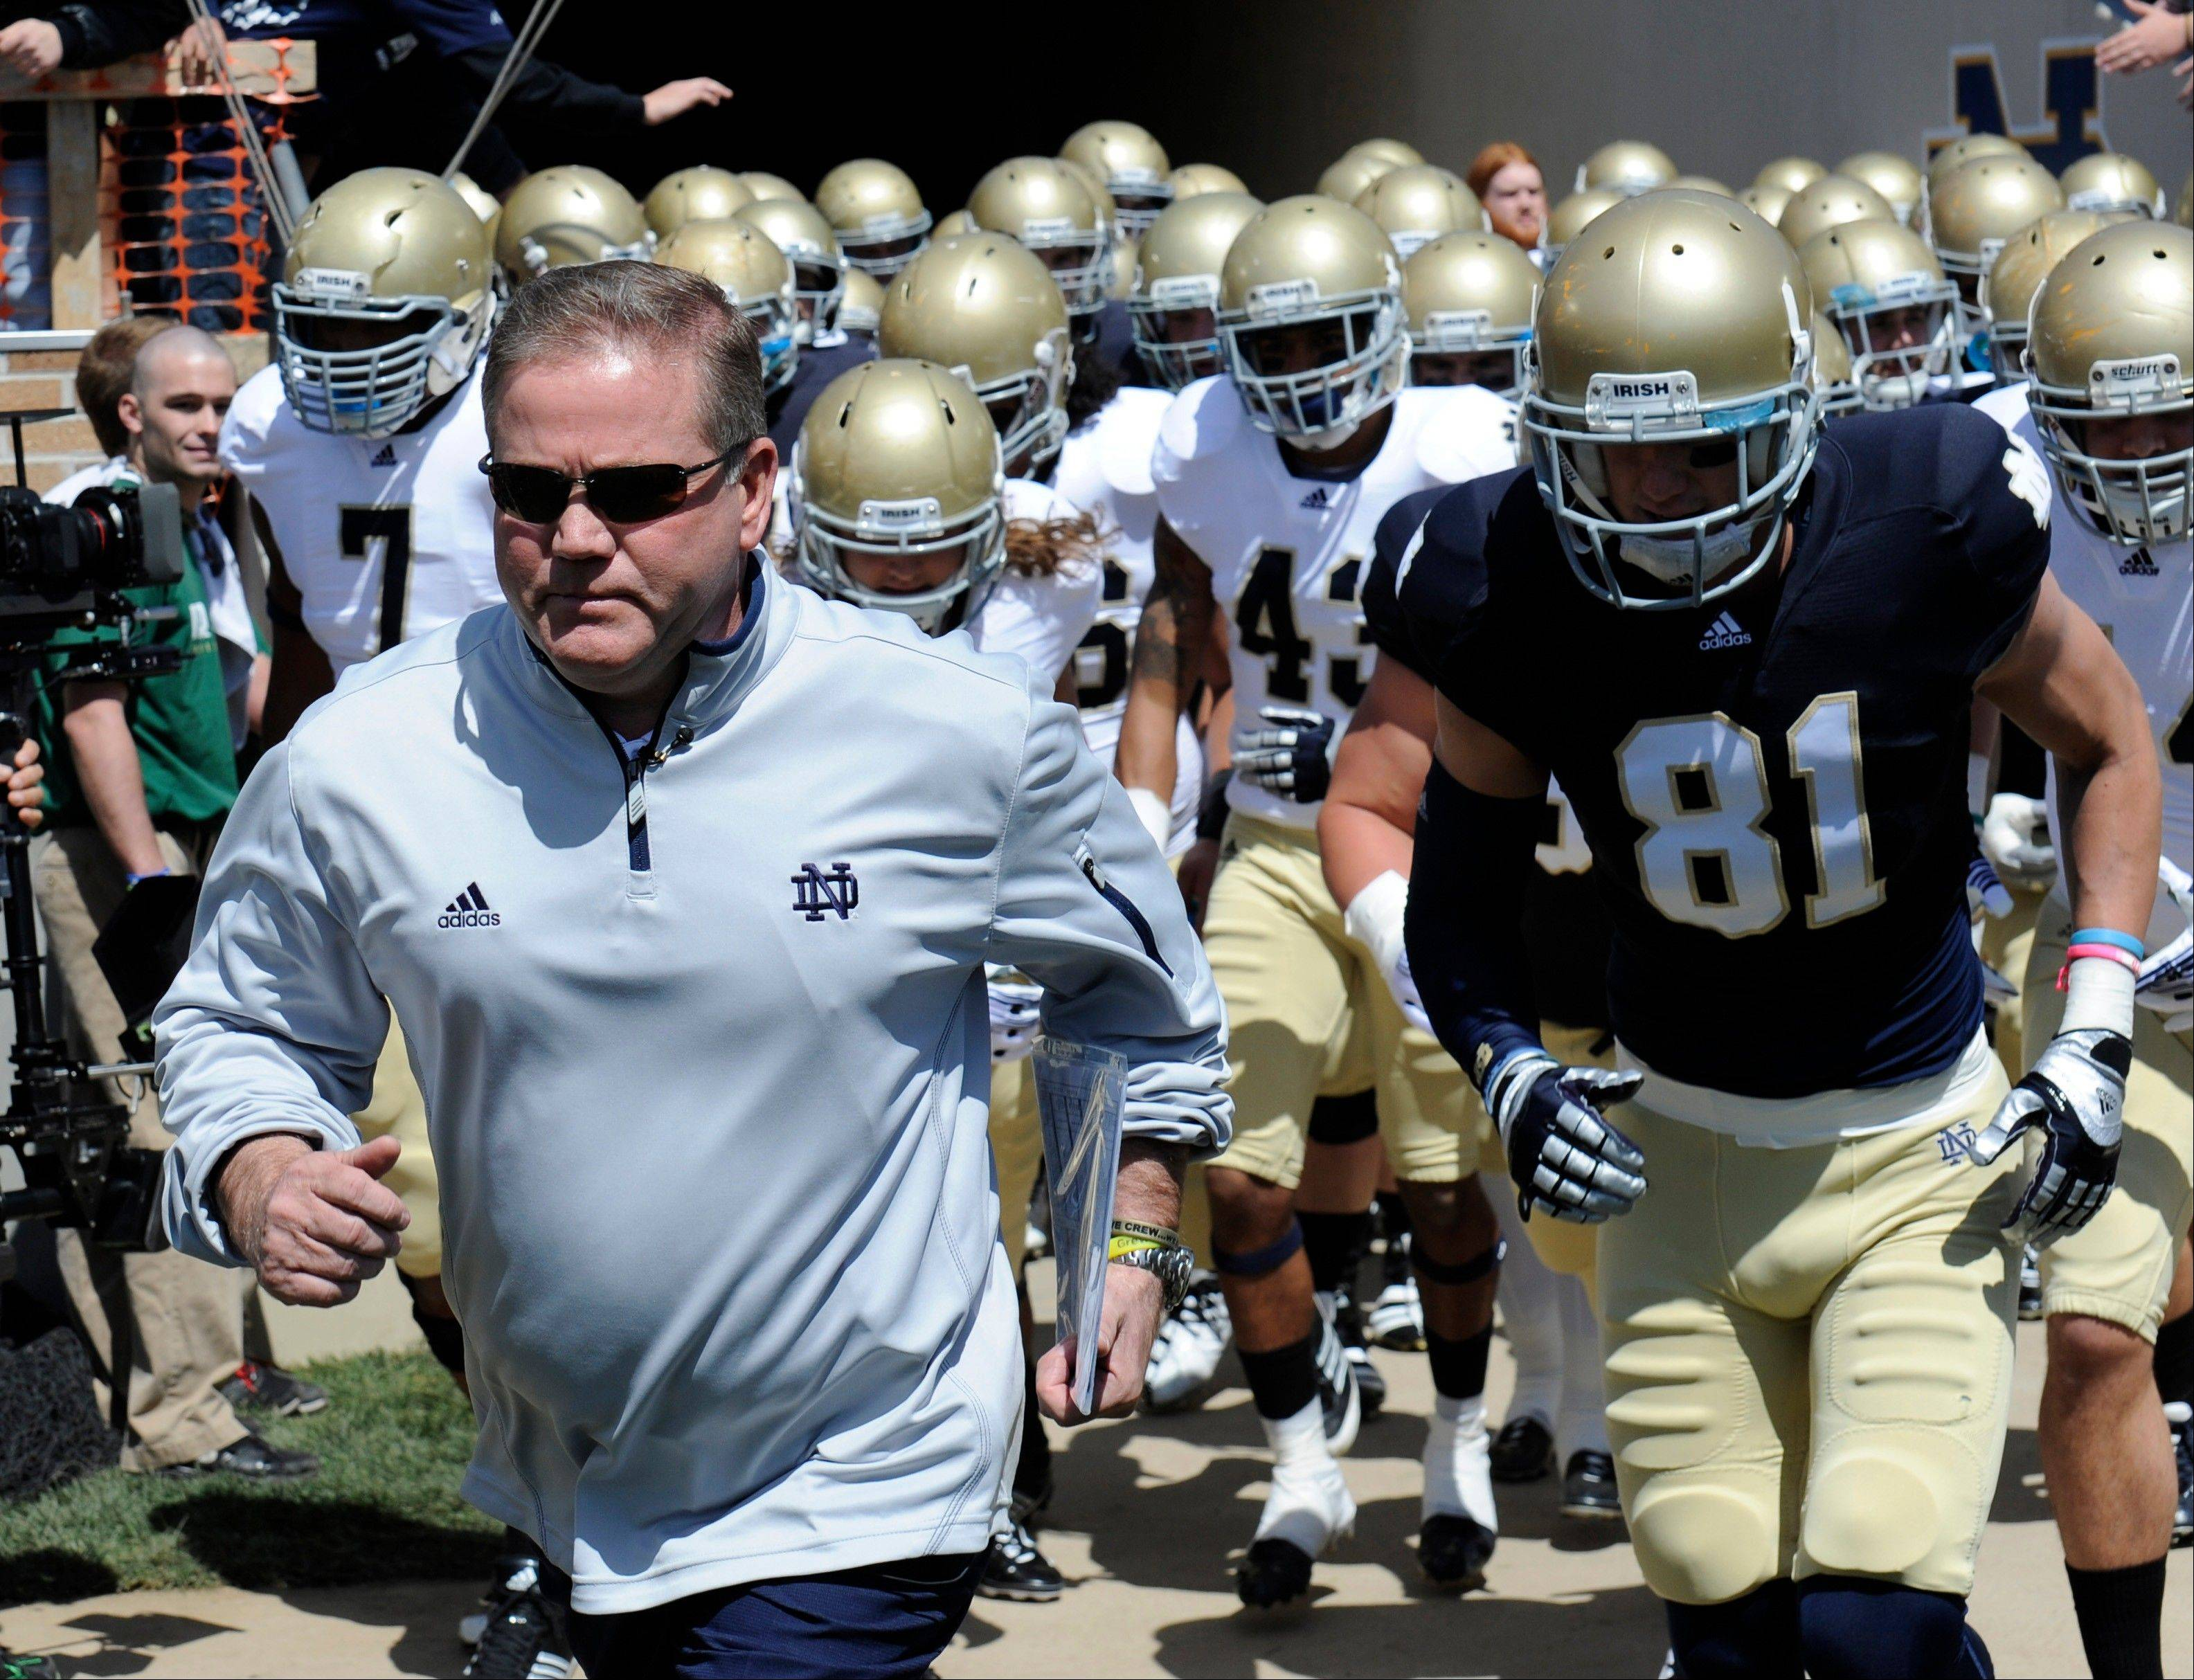 Notre Dame is preparing for their season opener in Ireland against Navy.